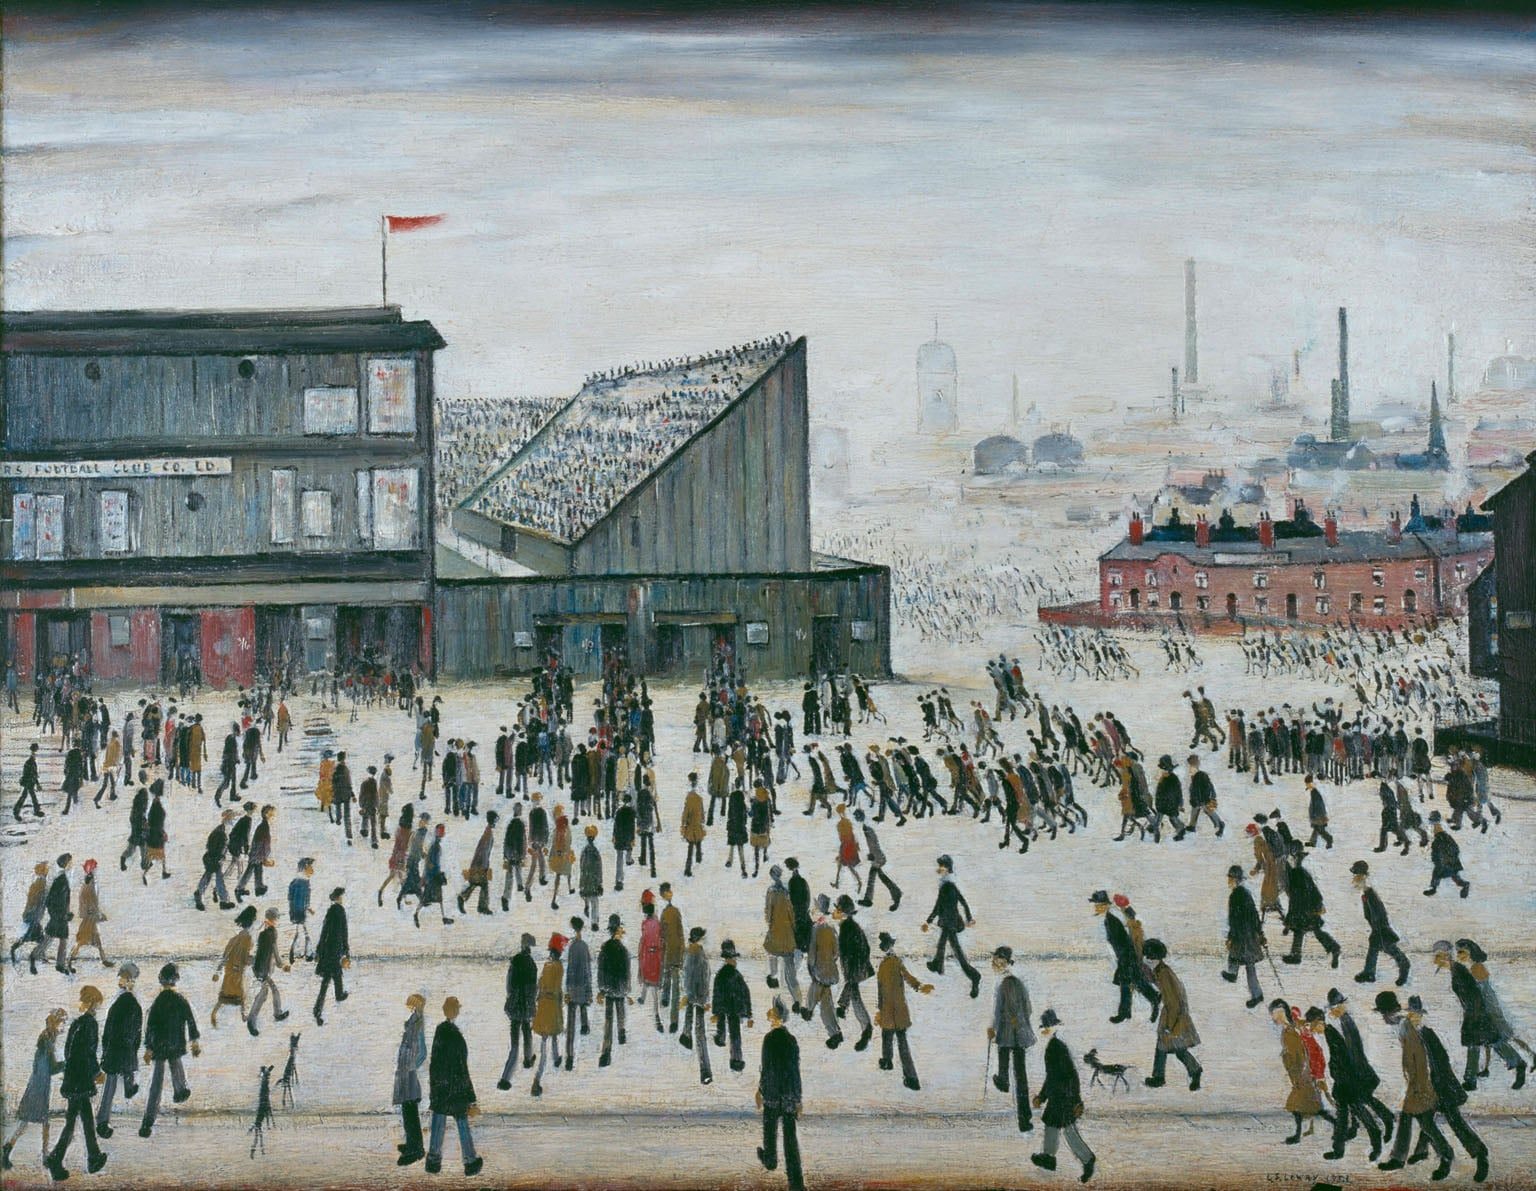 8. L.S. Lowry, Going to the Match, 1953 - The Professional Footballers' Association (on loan to Tate Britain)